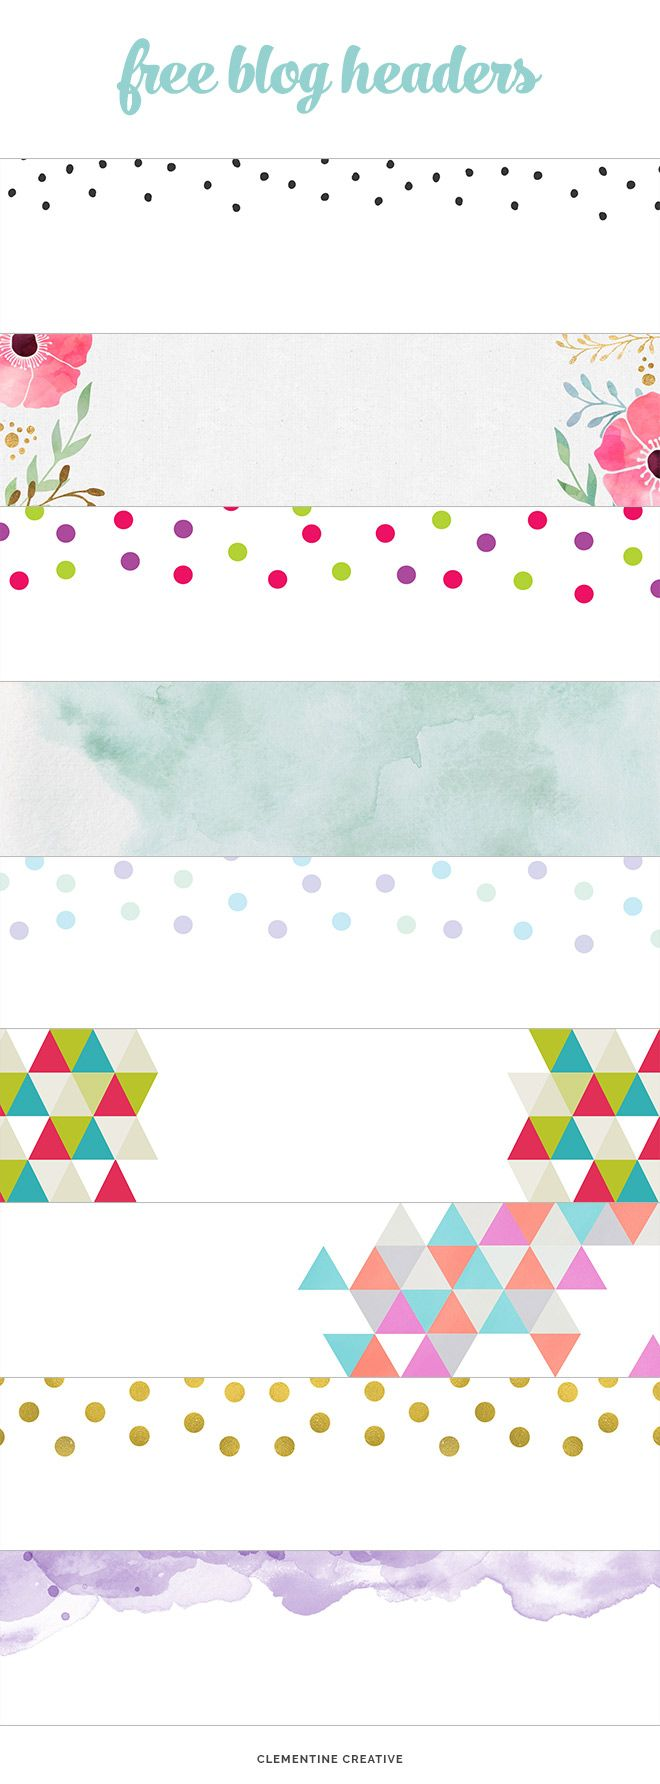 free creative blog headers - from watercolour to gold dots